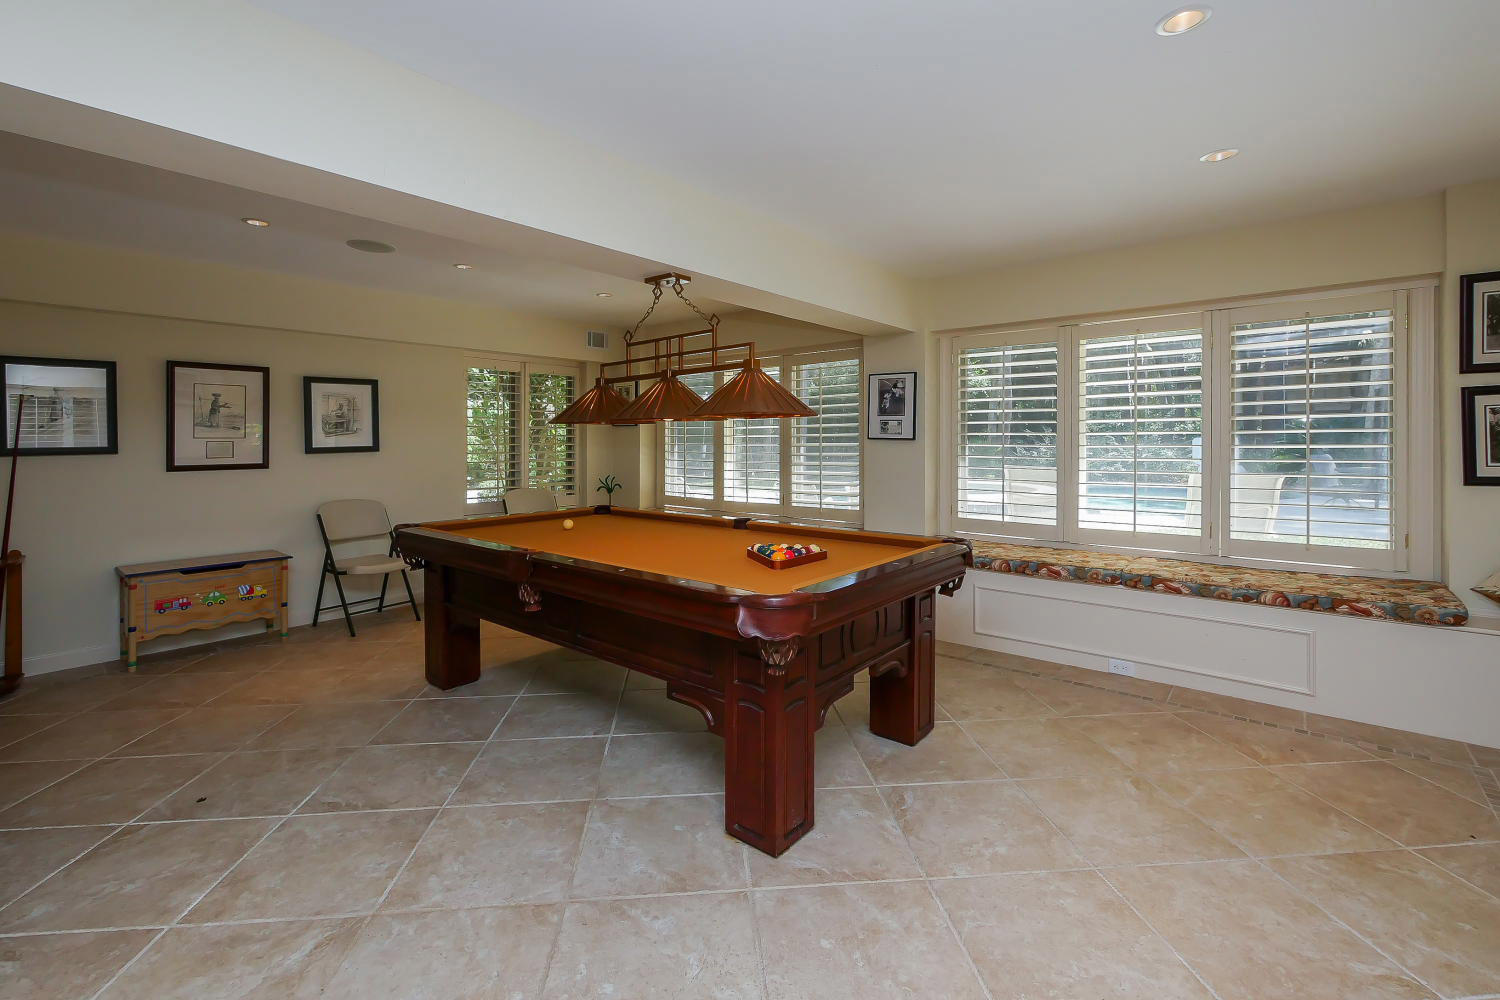 Pool table in recreation room | Royal Estate plus Cottage